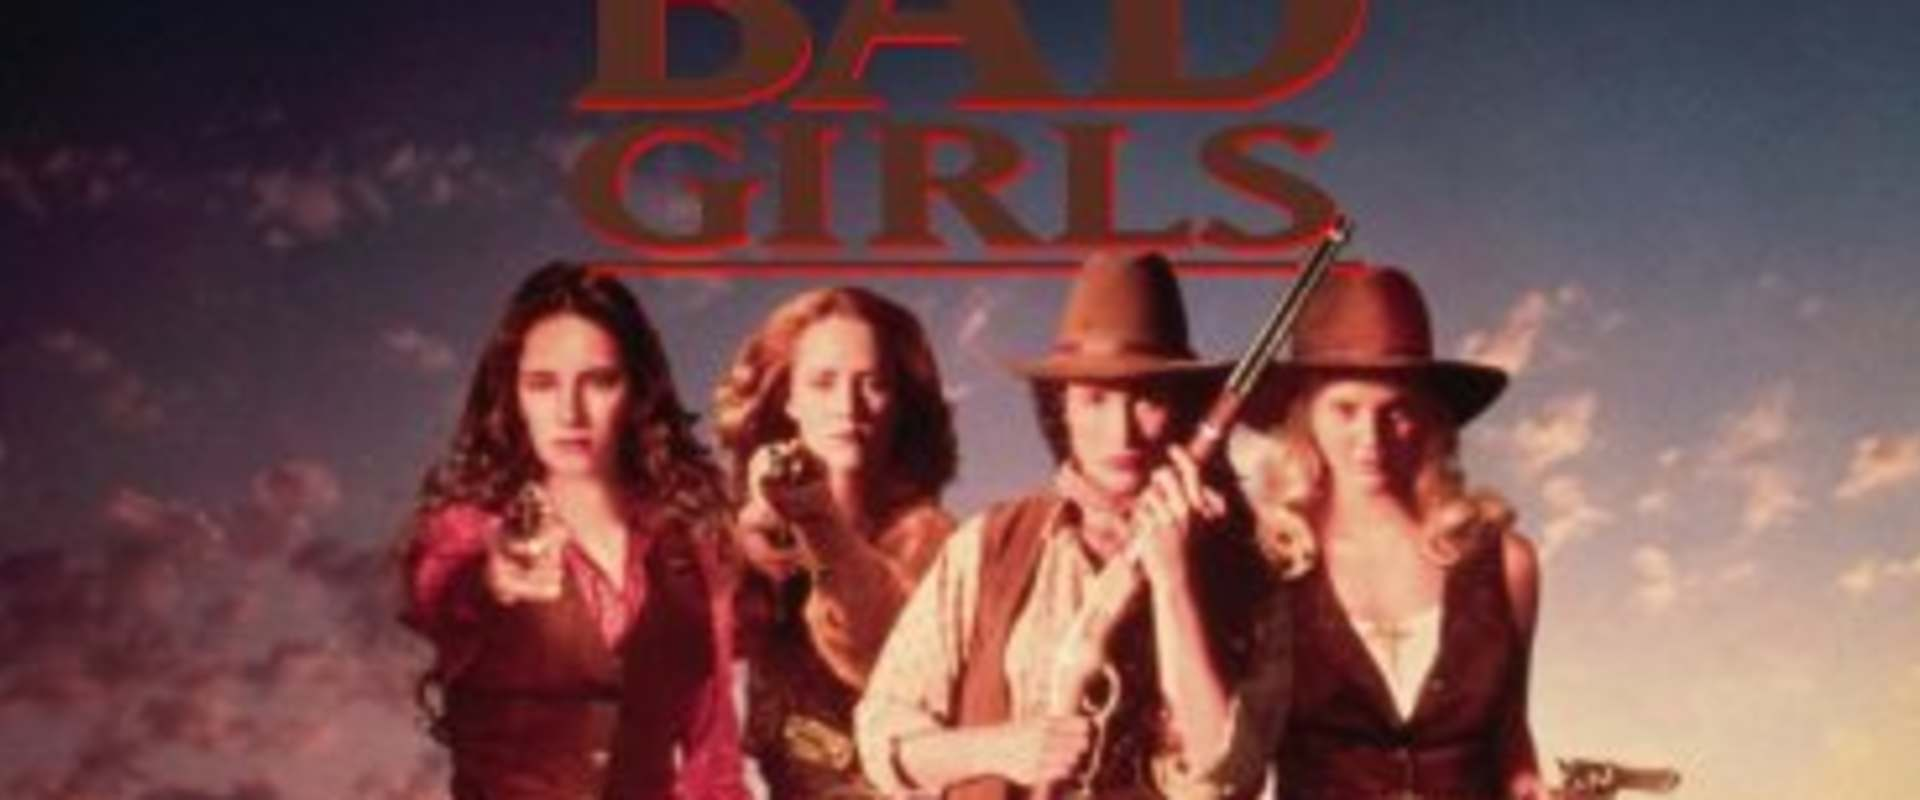 Bad Girls background 2